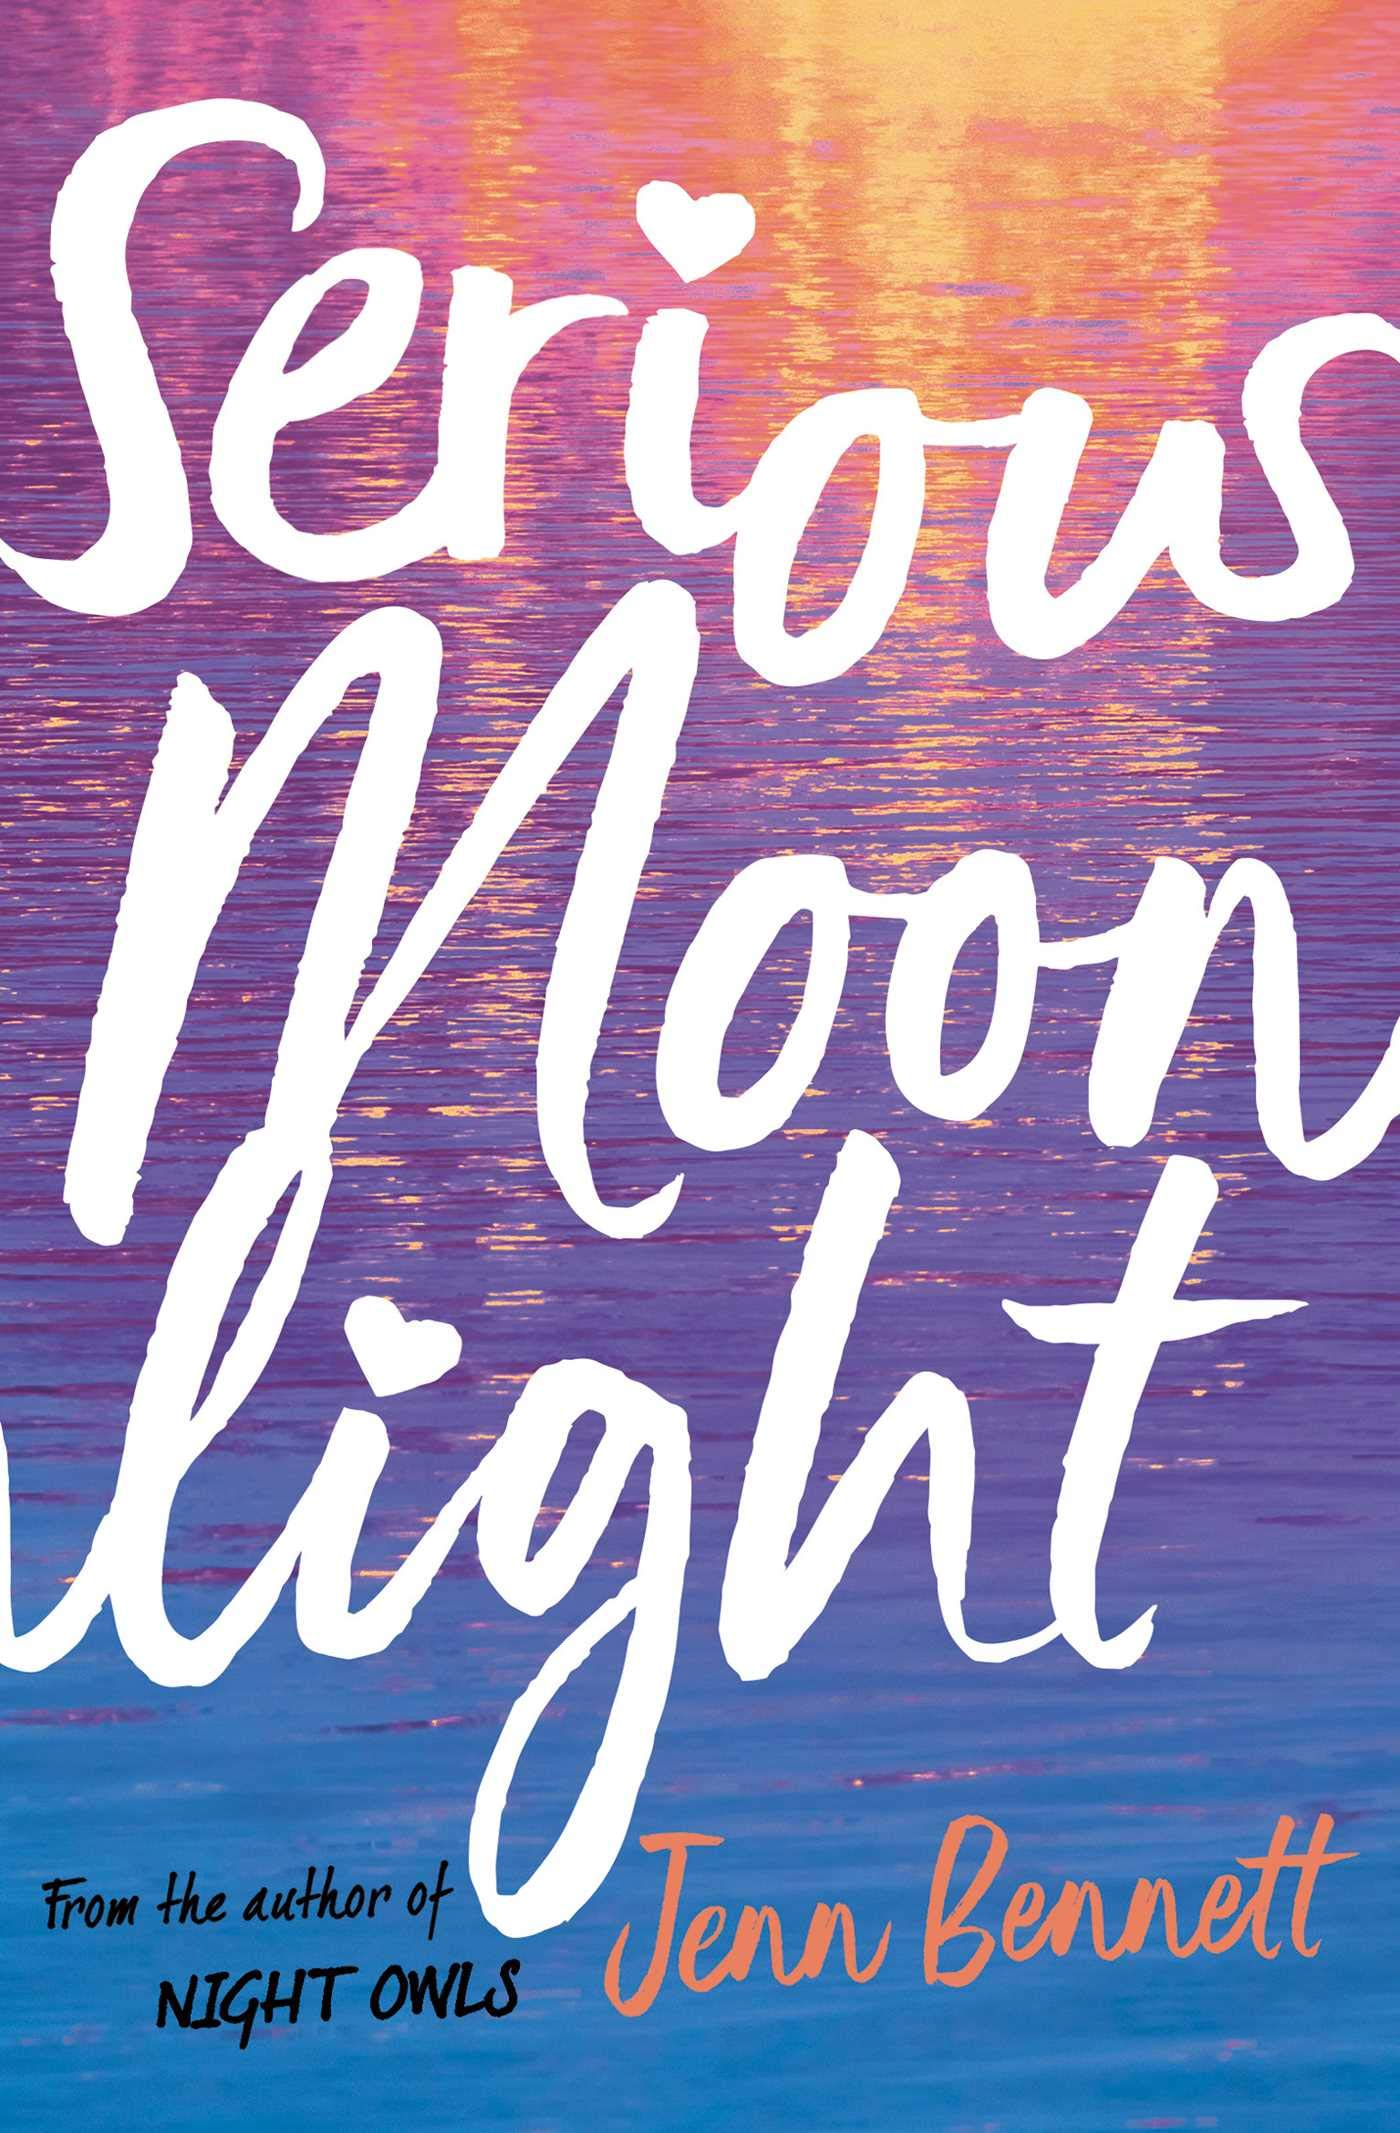 Serious Moonlight: Amazon.co.uk: Jenn Bennett: 9781471180729: Books